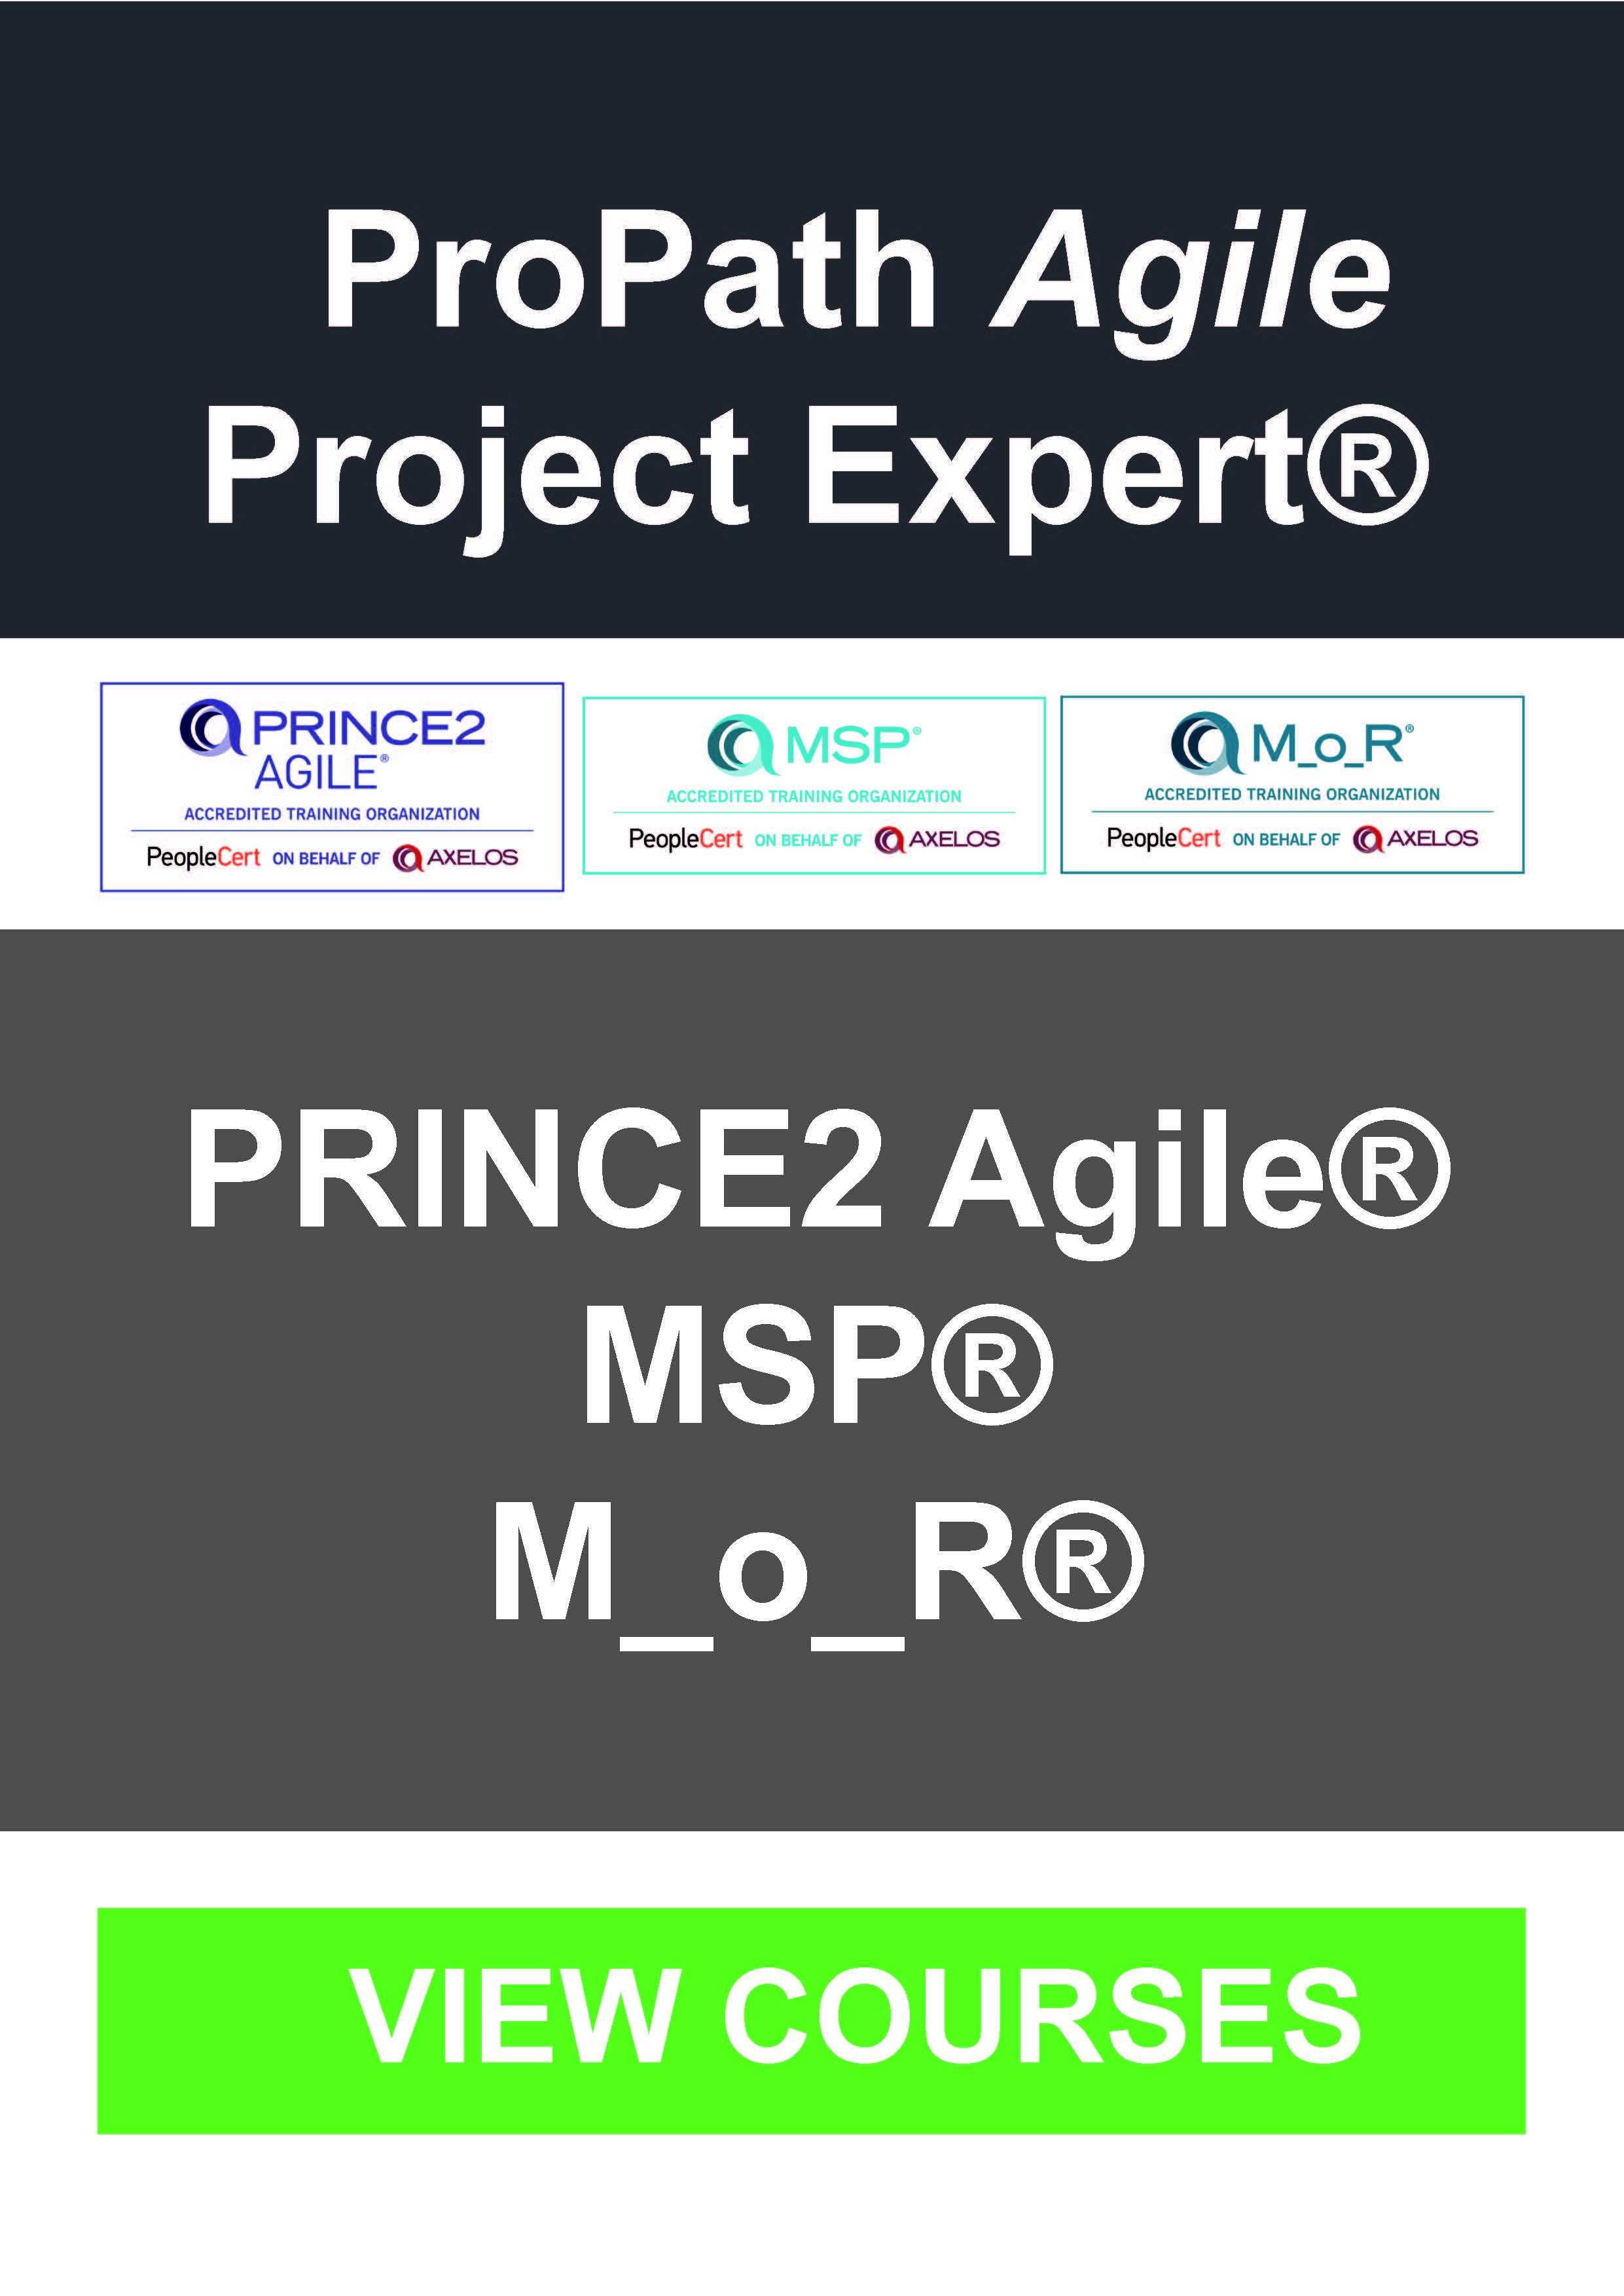 ProPath_Agile_Project_Expert_AXELOS